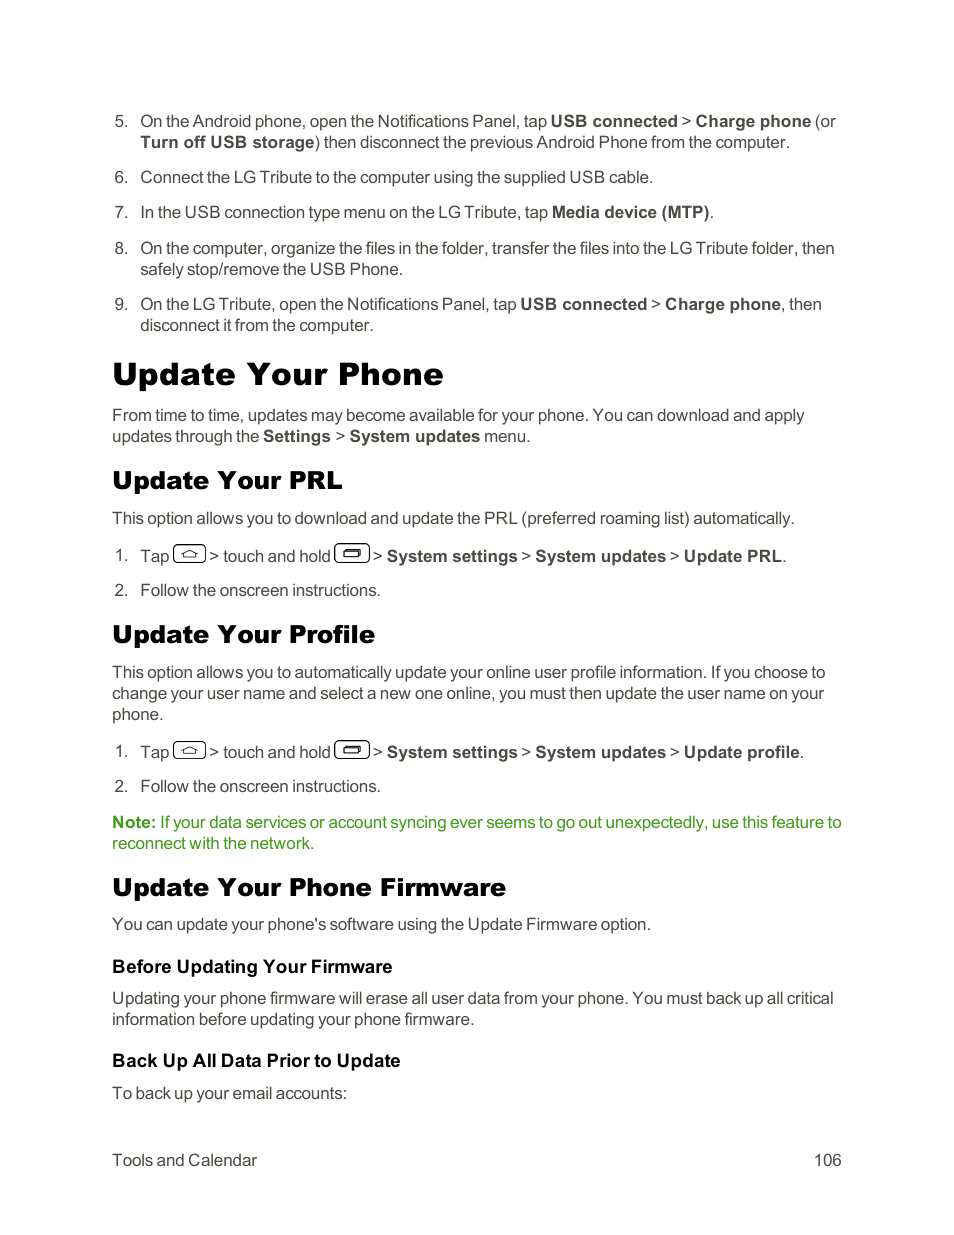 Update your phone, Update your prl, Update your profile | LG